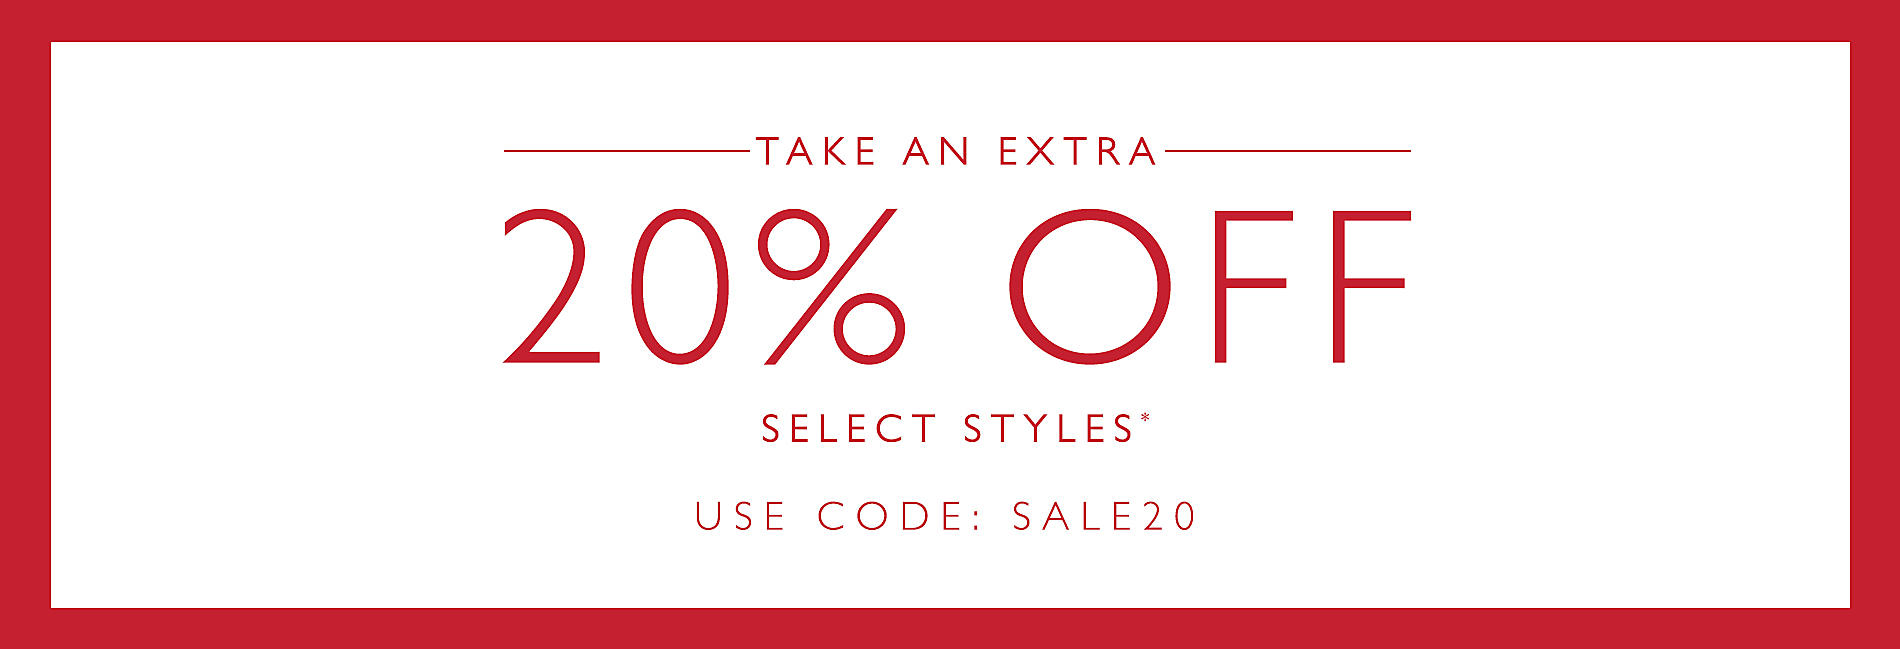 Take An Extra 20% Off Select Styles